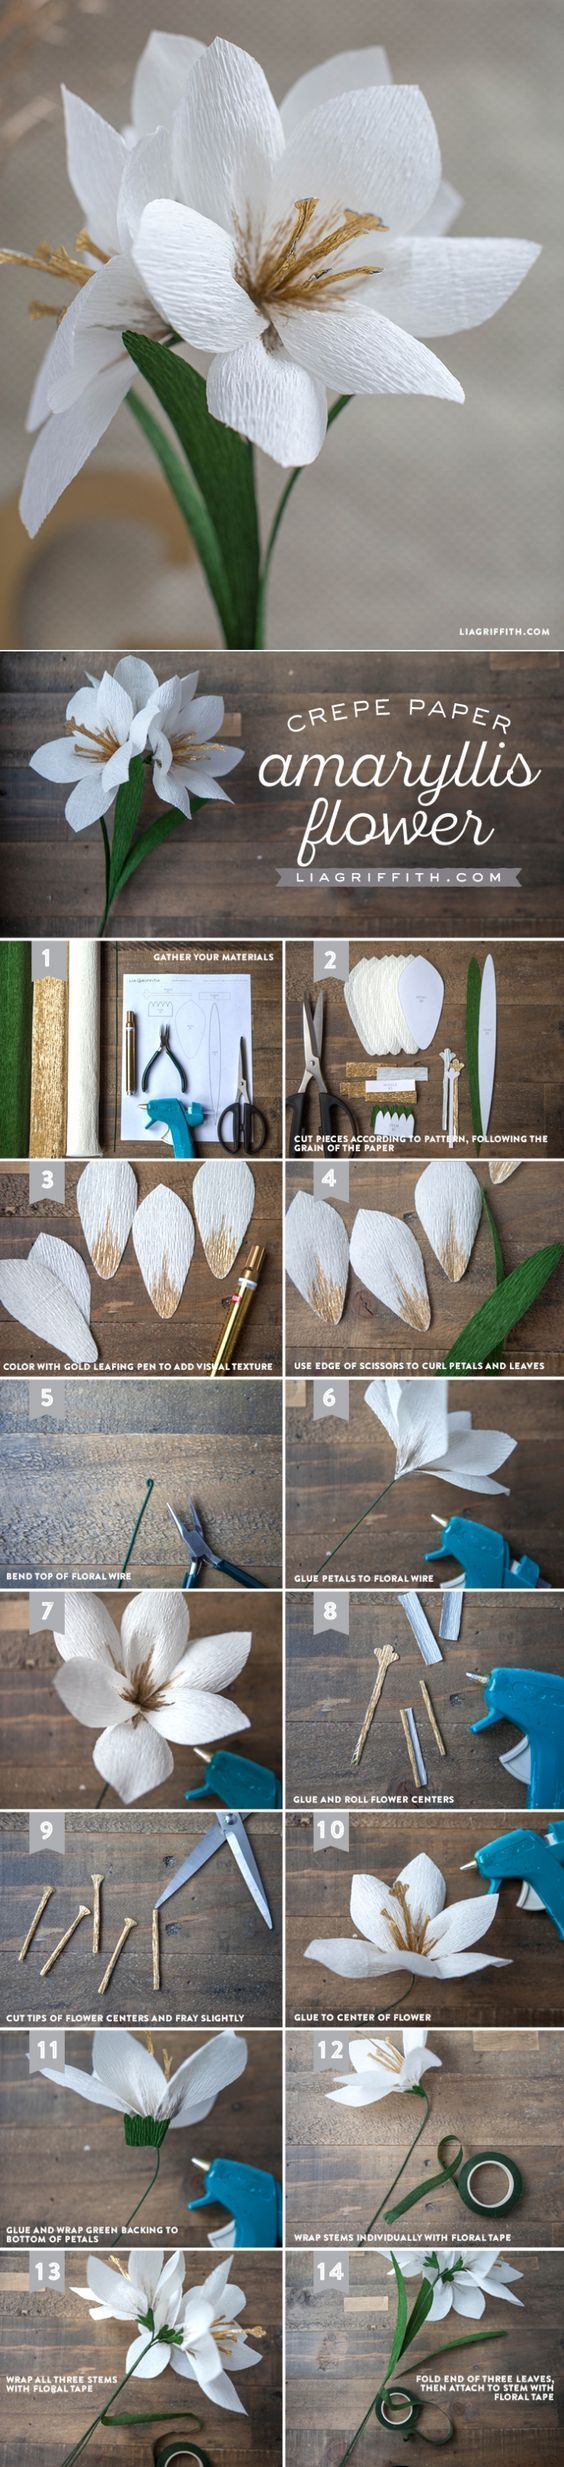 DIY Crepe Paper Amaryllis - www.LiaGriffith.com - #holidays #holidaydecor #diyholiday #crepepaper#crepepaperflower #paperflowers